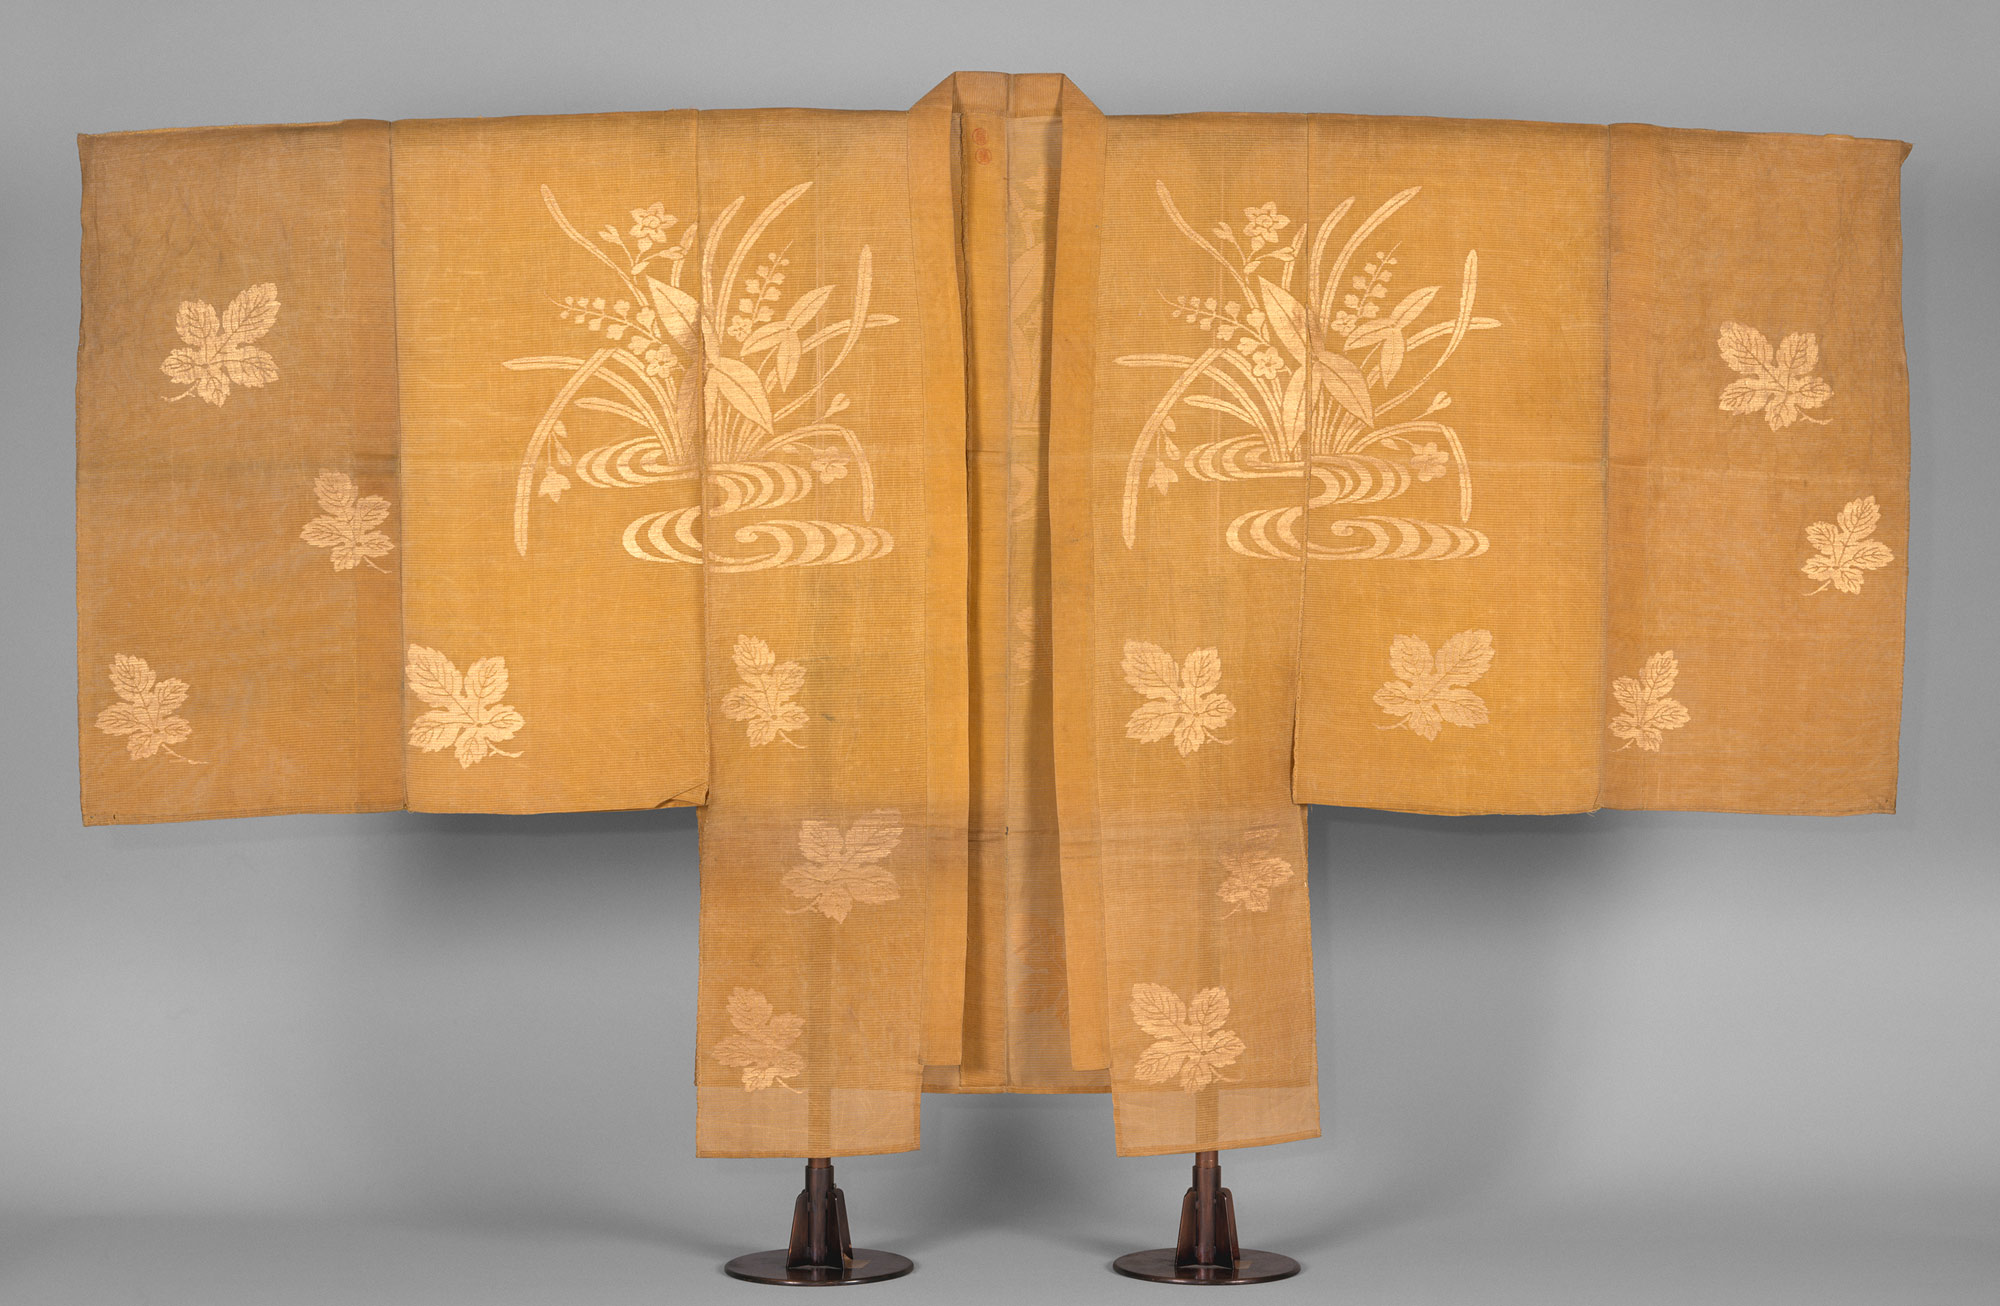 Noh Costume (Chōken) with Water Plants and Mulberry Leaves